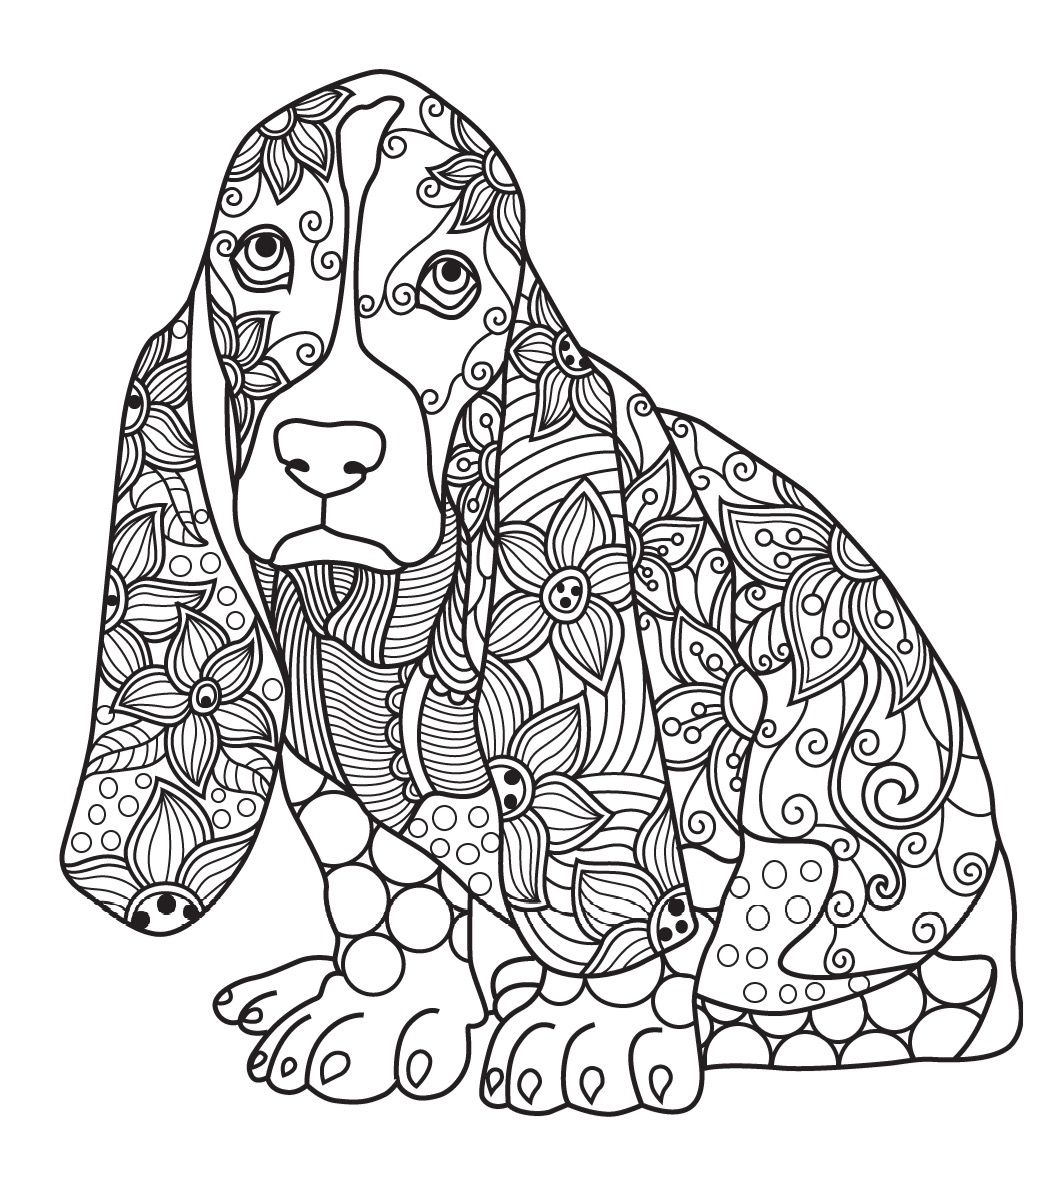 Dog Colorish Coloring Book For Adults Mandala Relax By Goodsofttech Dog Coloring Page Mandala Coloring Pages Animal Coloring Books